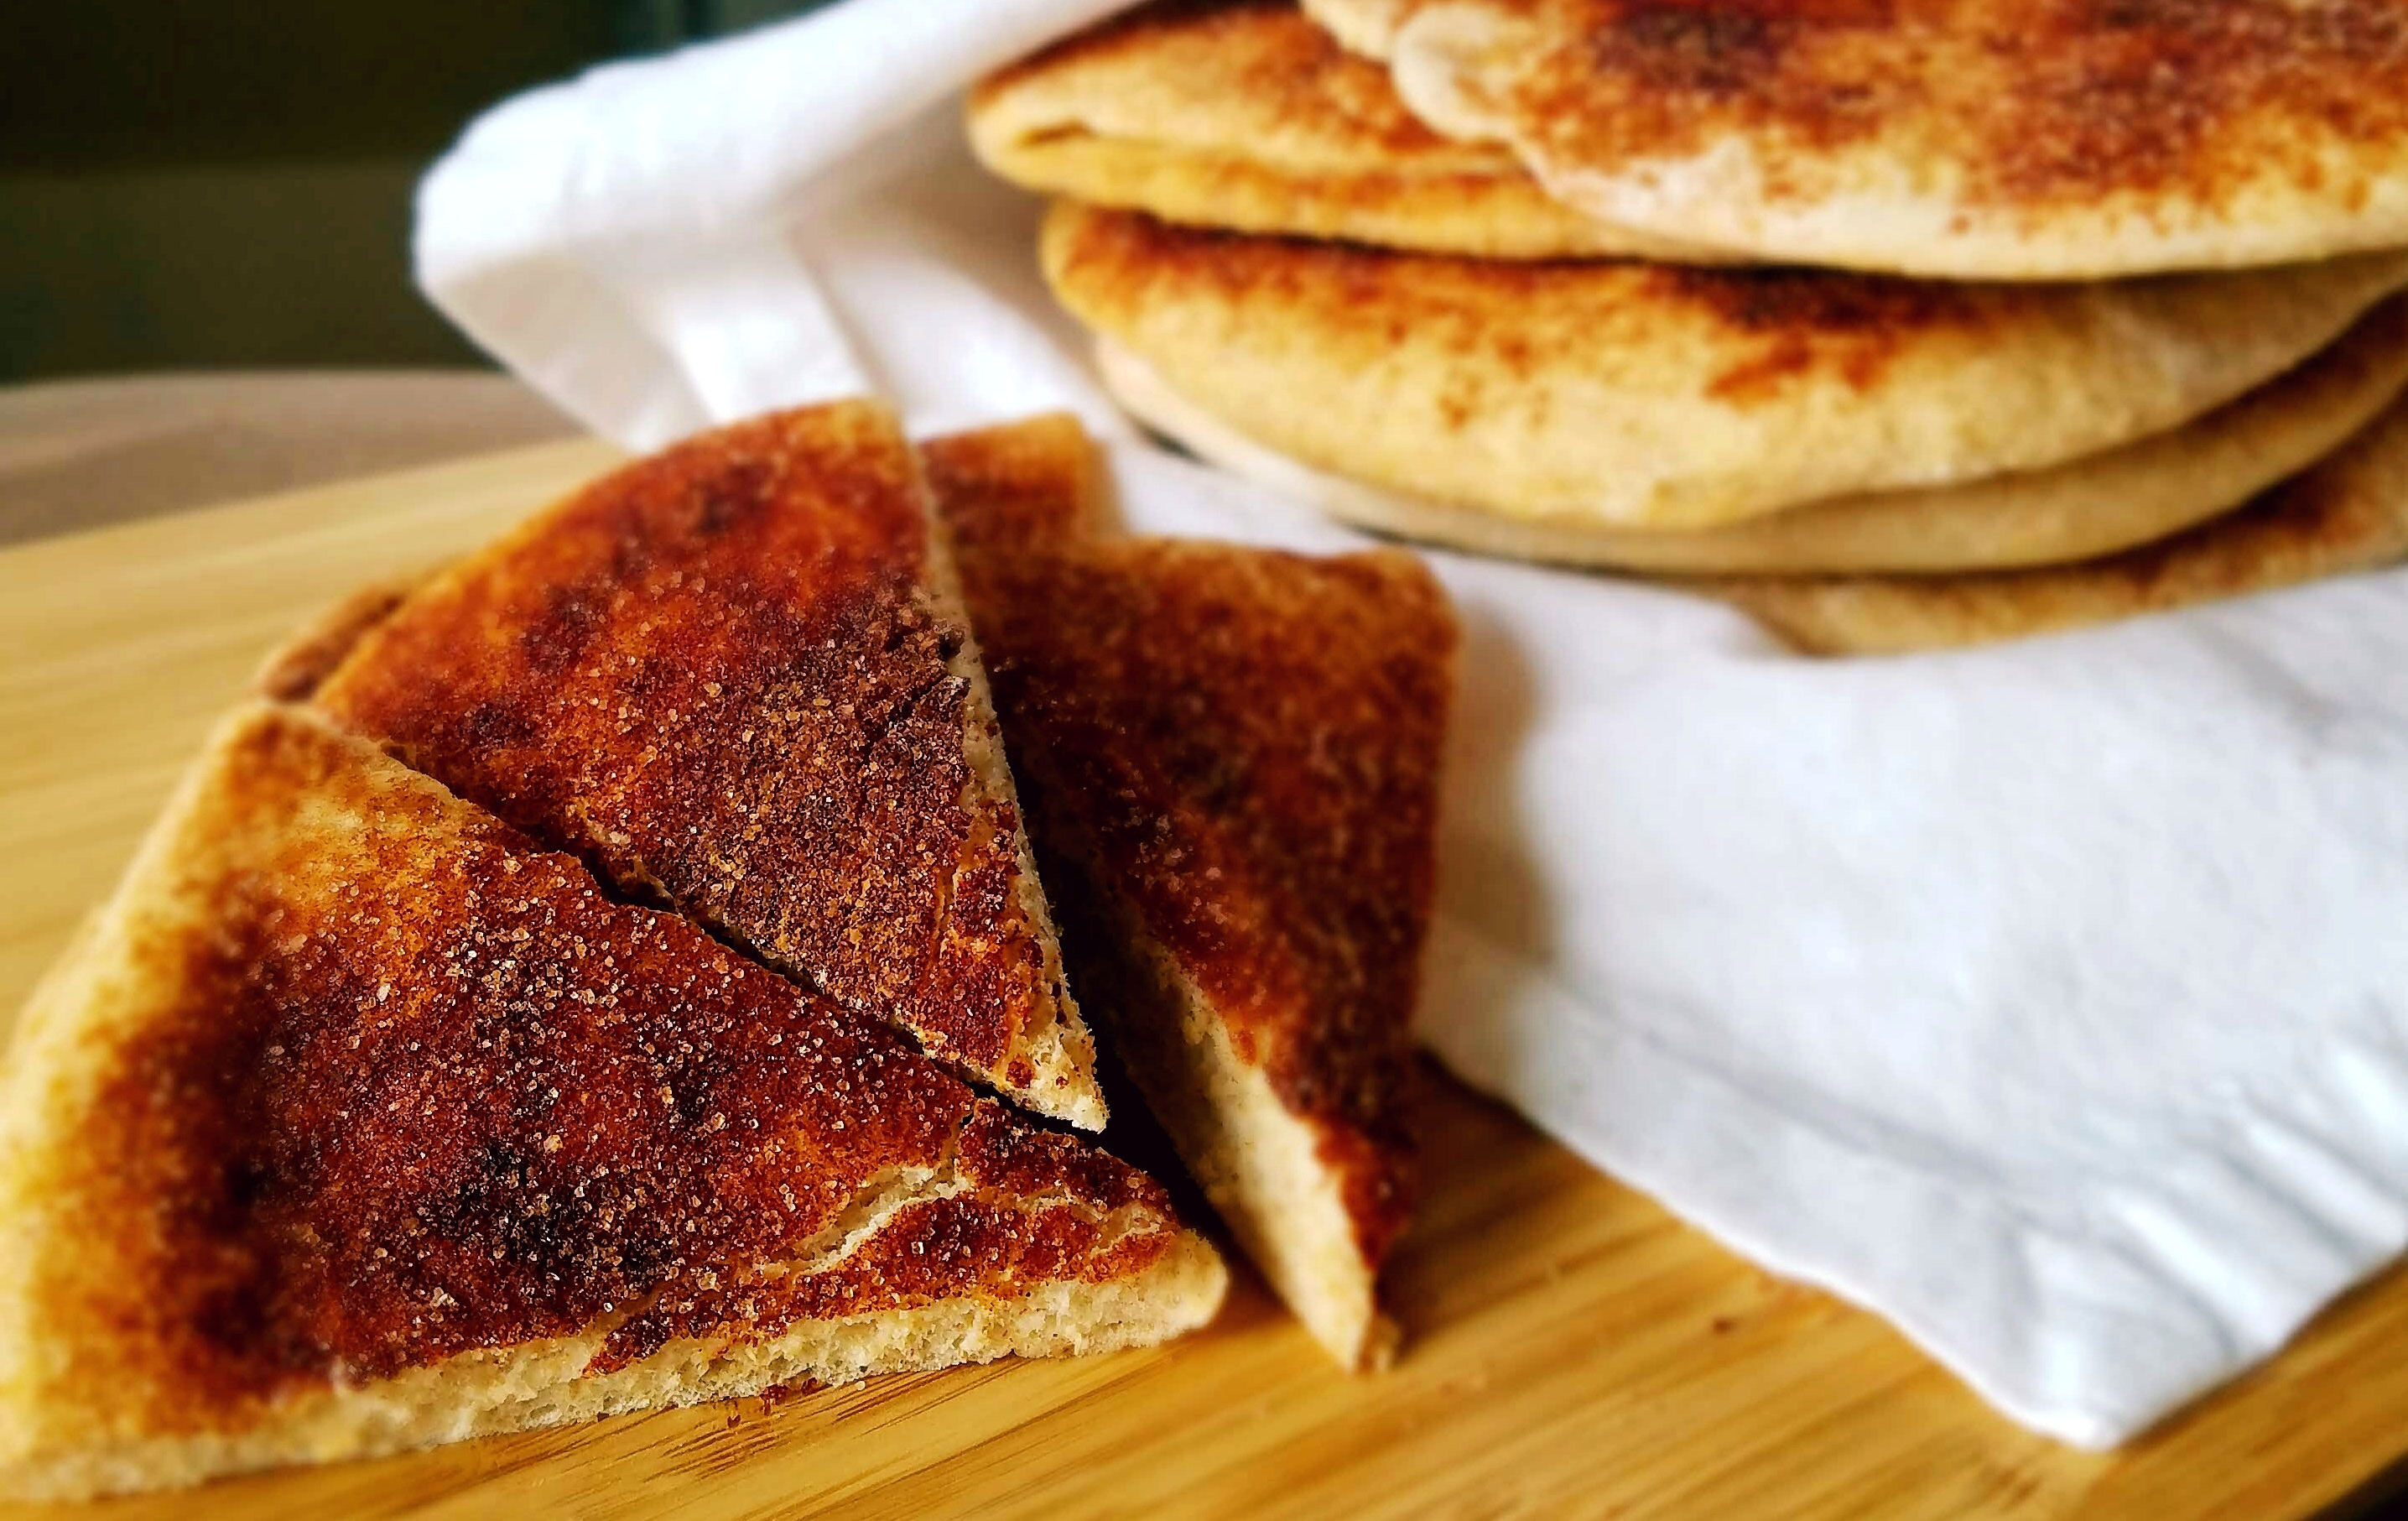 Homemade cinnamon sugar pita bread. Is that anything better than a fresh baked pita that's soft, fluffy and covered it sweet cinnamon sugar?